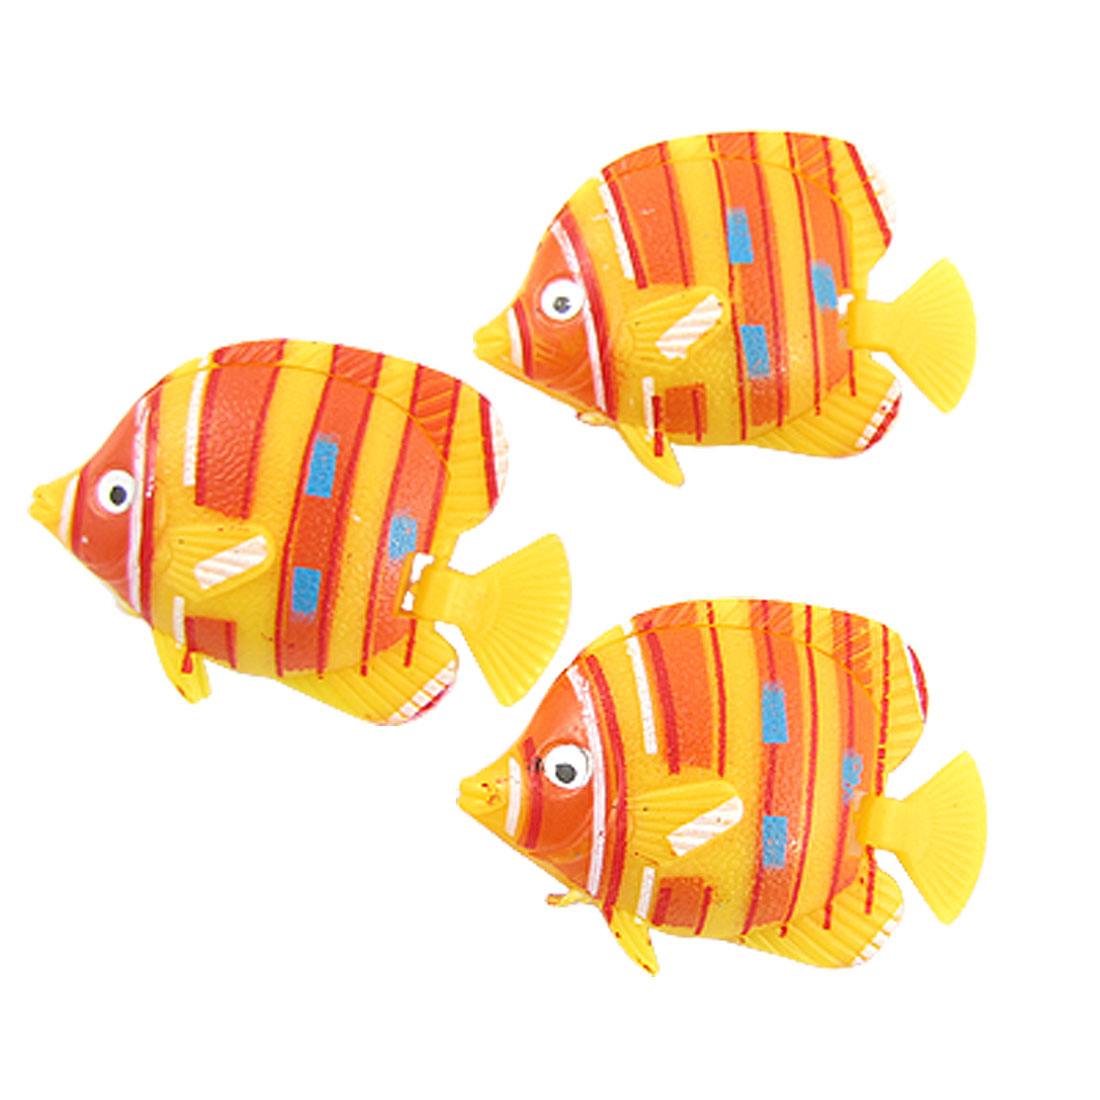 Aquarium Yellow Orange Plastic Tropical Fish Ornament 3 Pcs